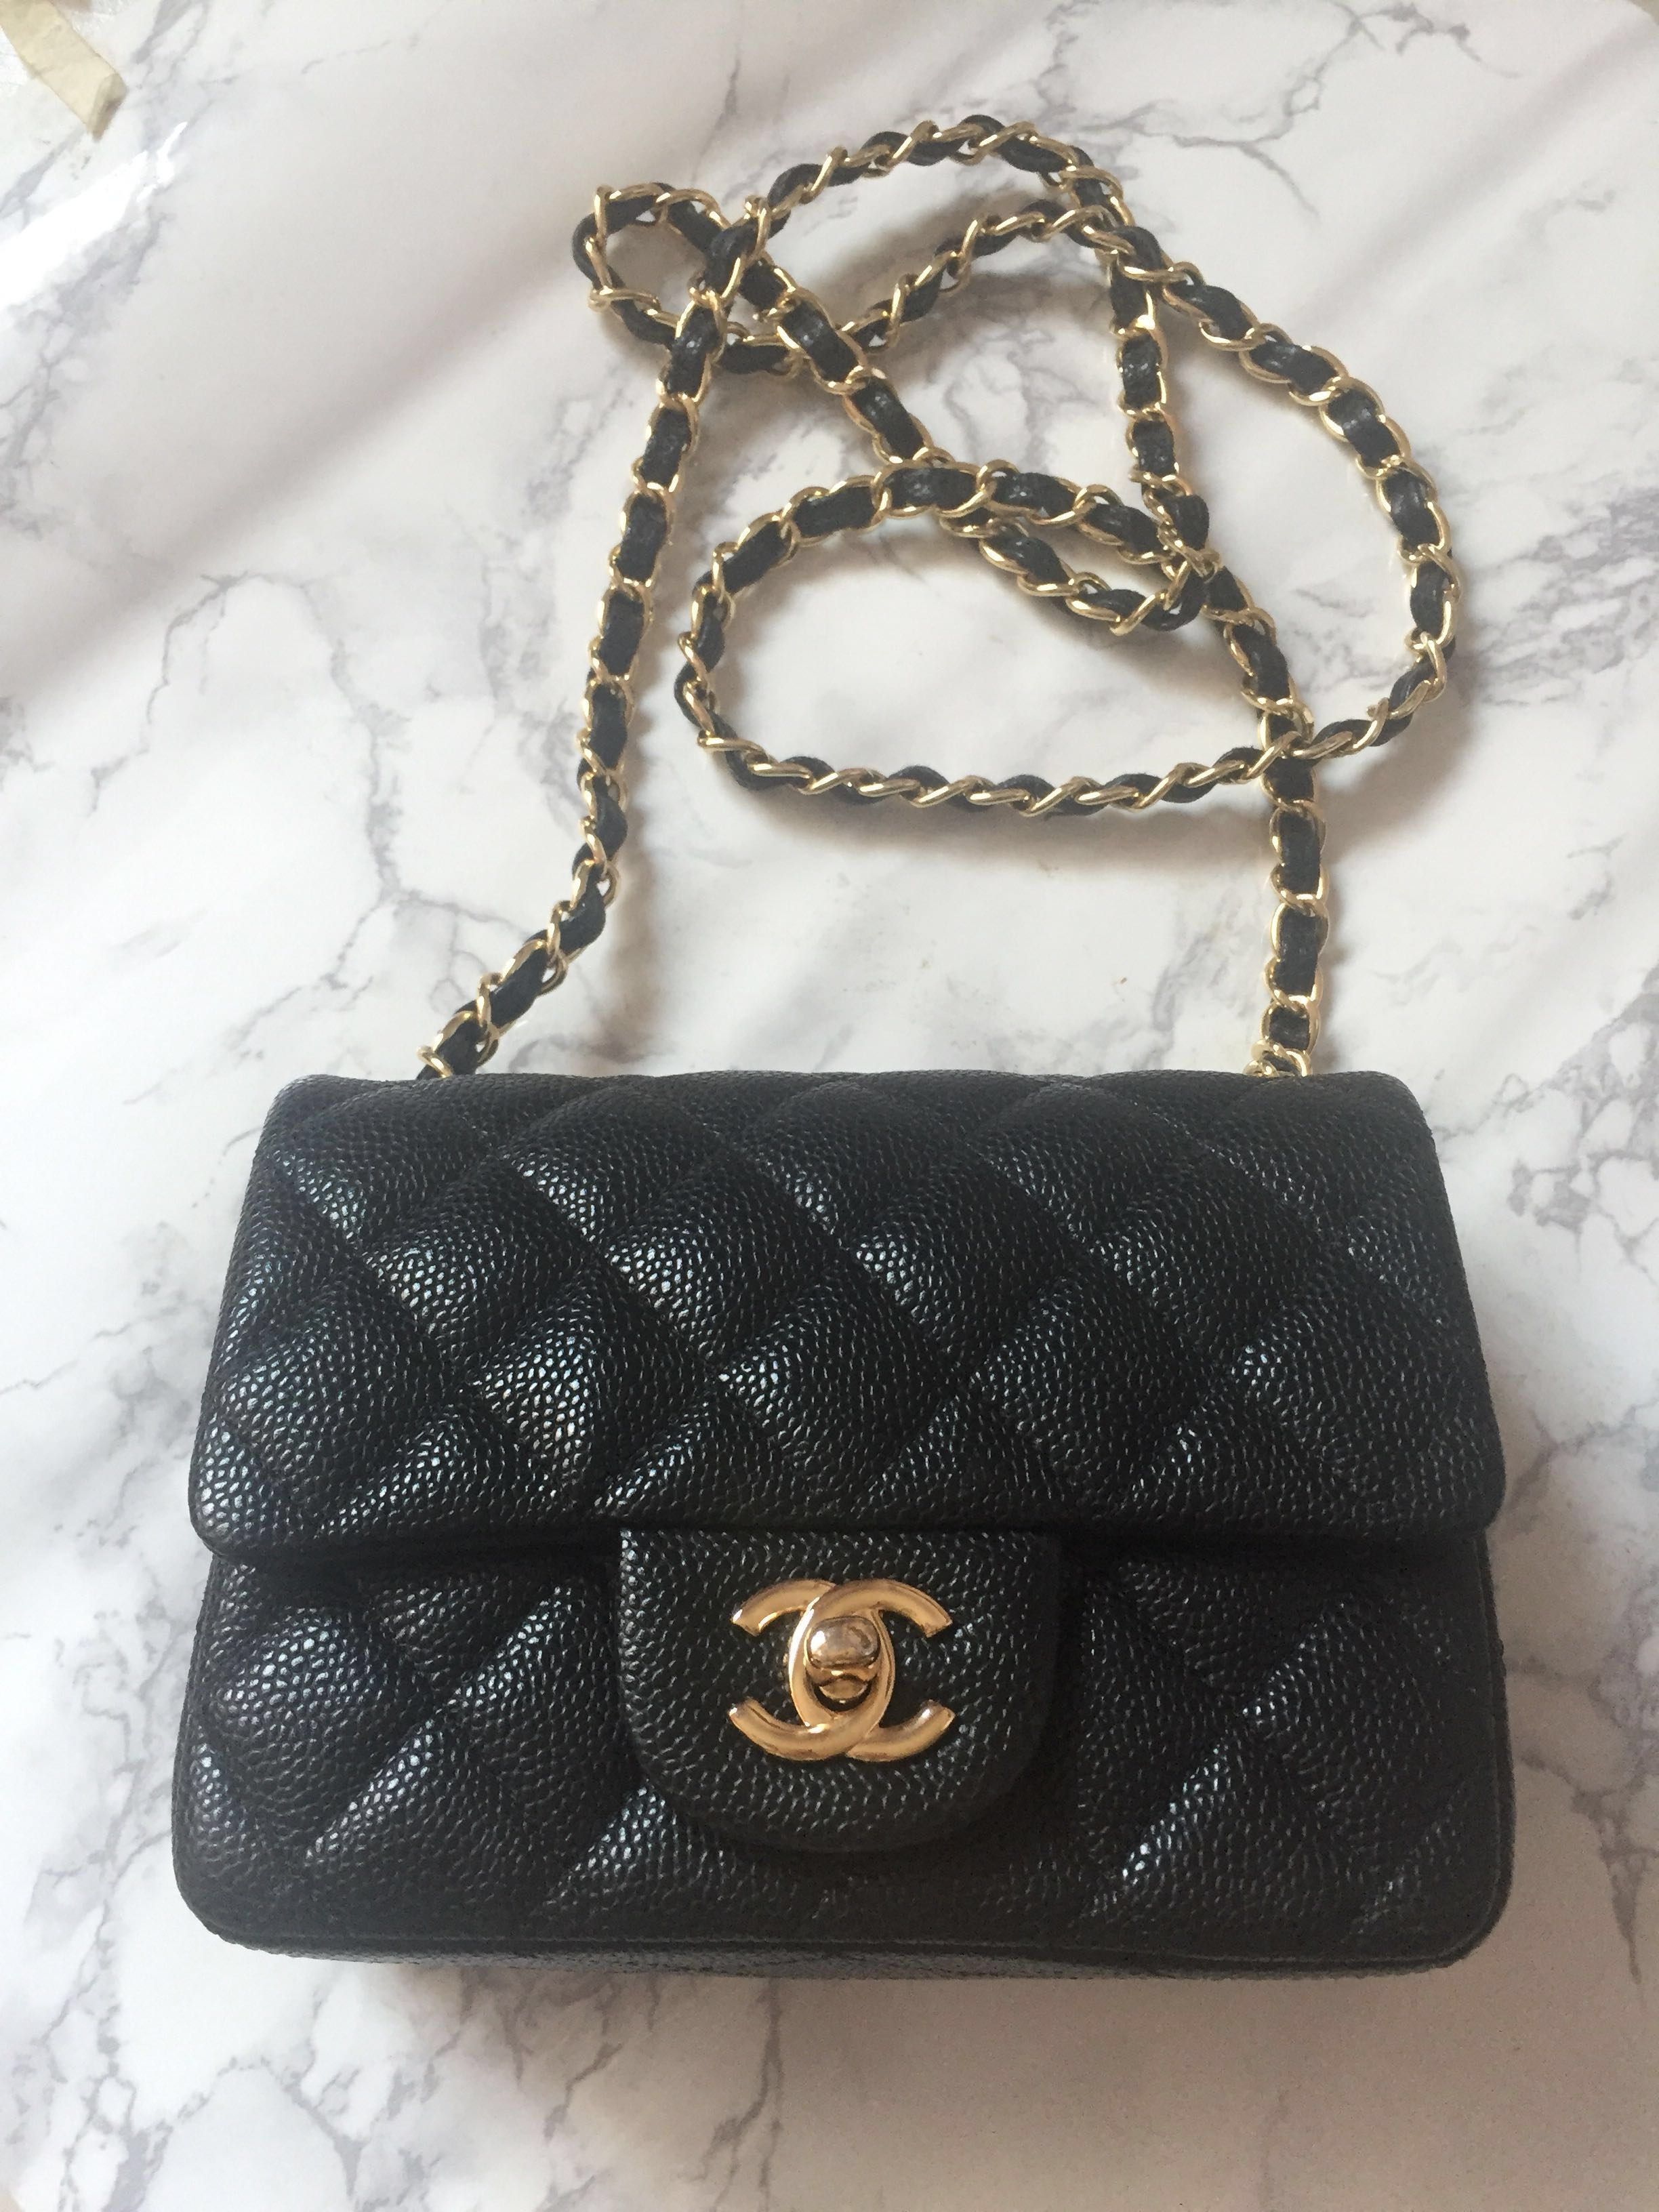 269188881648 (Item not available) Chanel Mini Square Classic Flap Bag